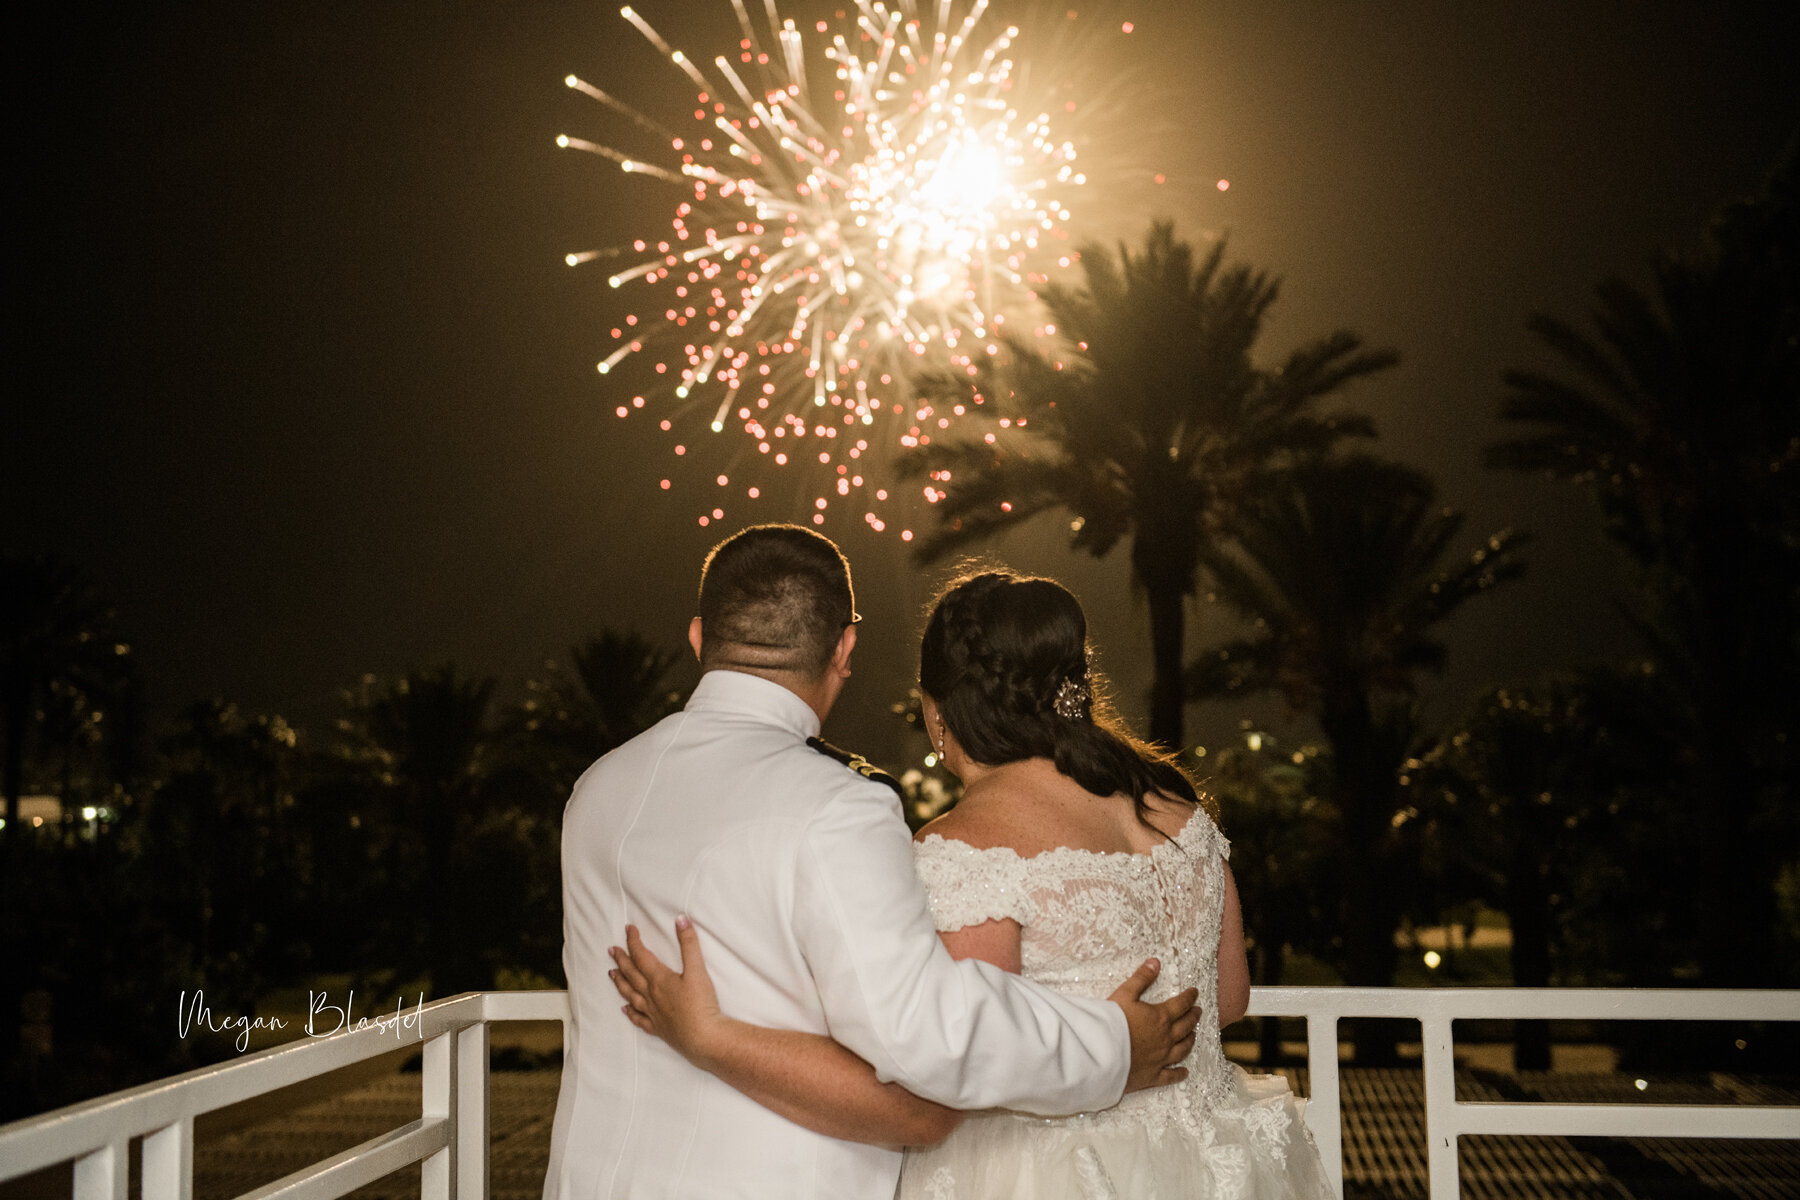 Sparks fly at this magical send-off